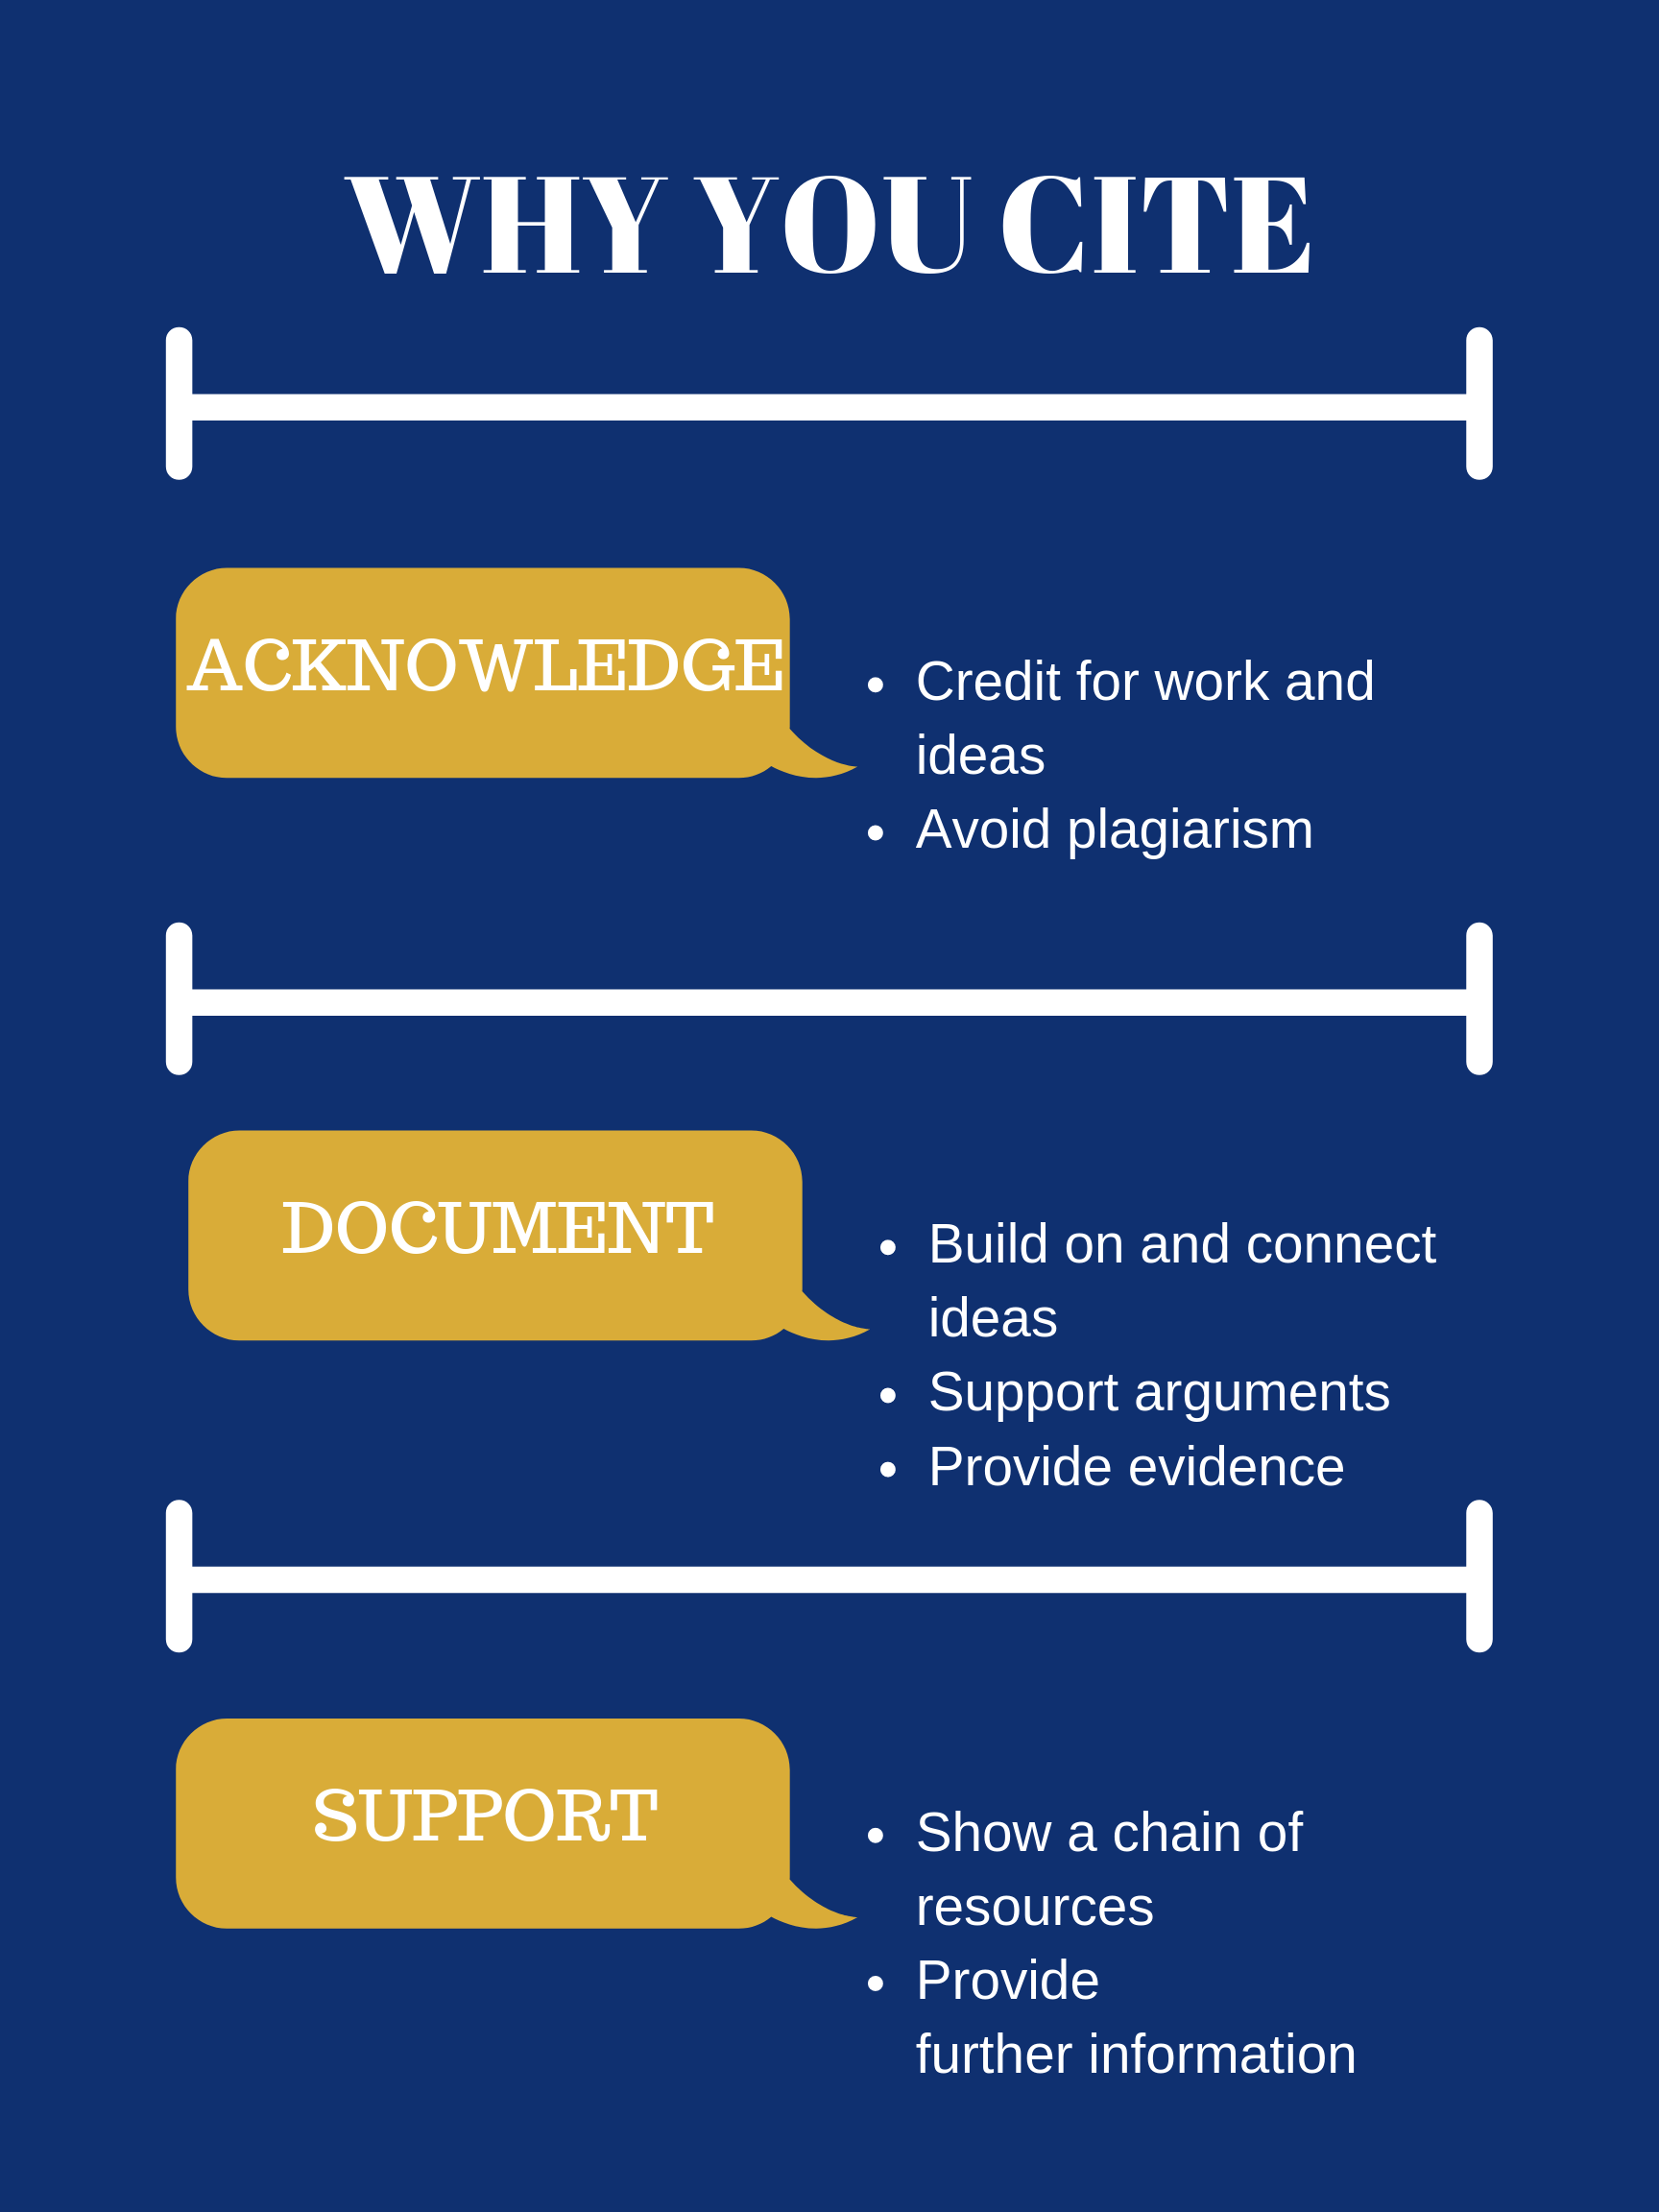 Why you cite: acknowledge: credit for work and ideas; avoid plagiarism document: build on and connect ideas; support arguments; provide evidence support: show a chain of resources; provide further information